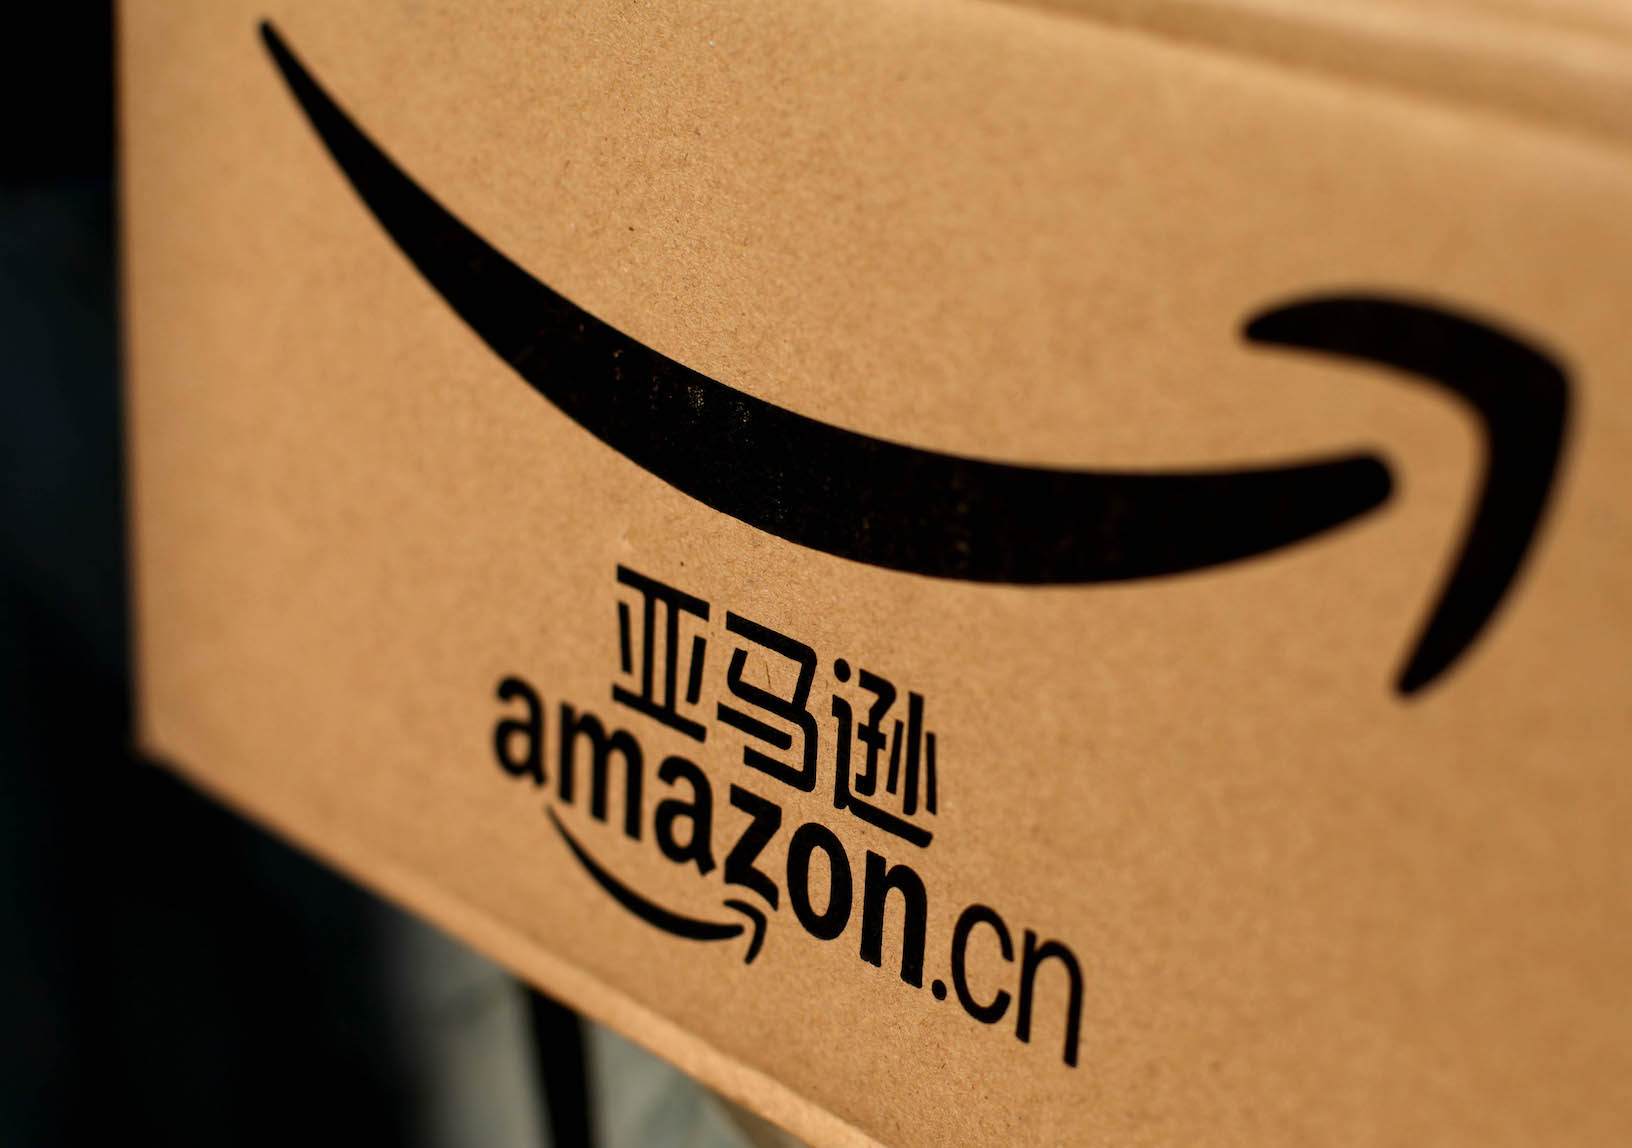 Long looking to shake off its image for being easy on counterfeiters and those who conduct fake or incentivized reviews, Amazon's latest step is perhaps its most stringent. The e-commerce giant has kicked off 600 China-based brands across 3,000 different seller accounts for knowingly and repeatedly violating its policies around review abuse.